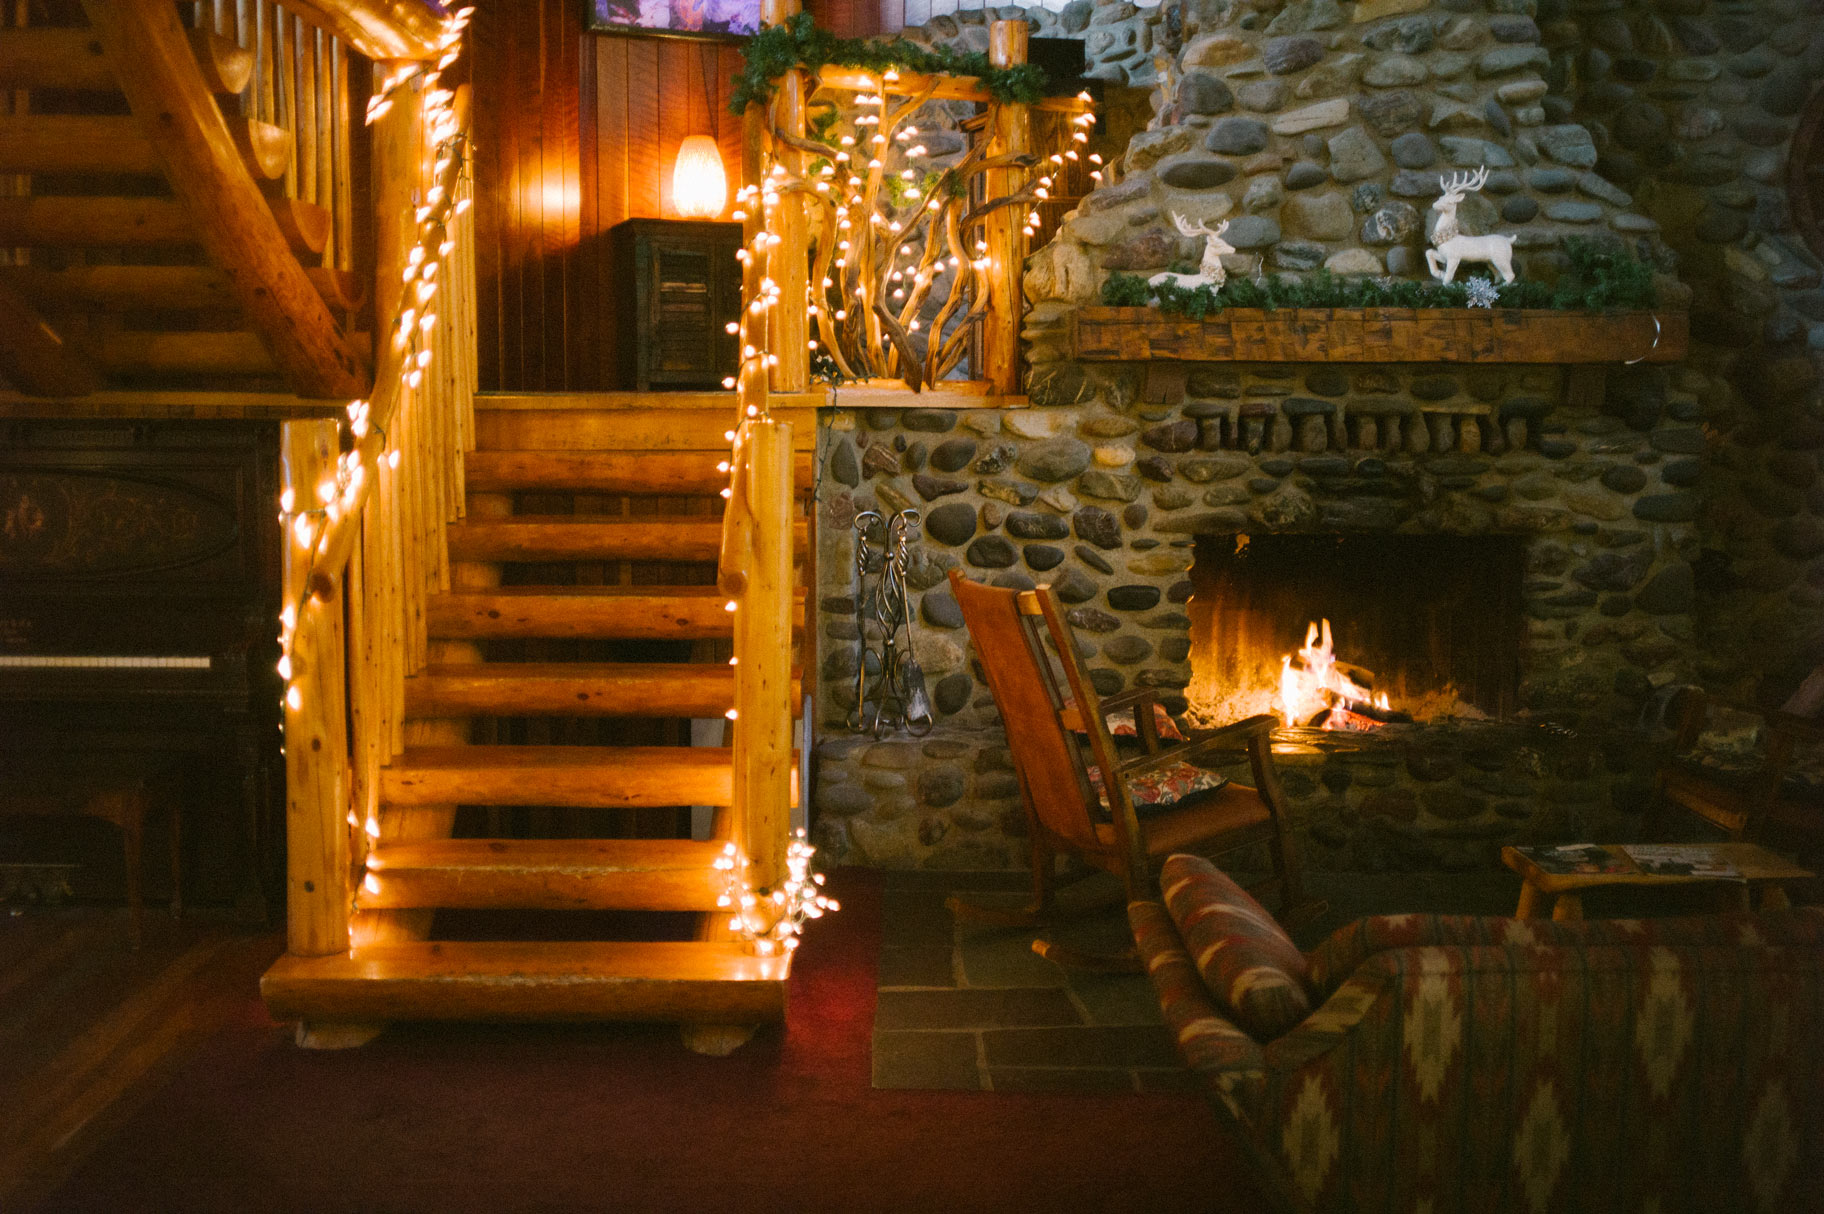 applegate-river-lodge-lobby-fireplace